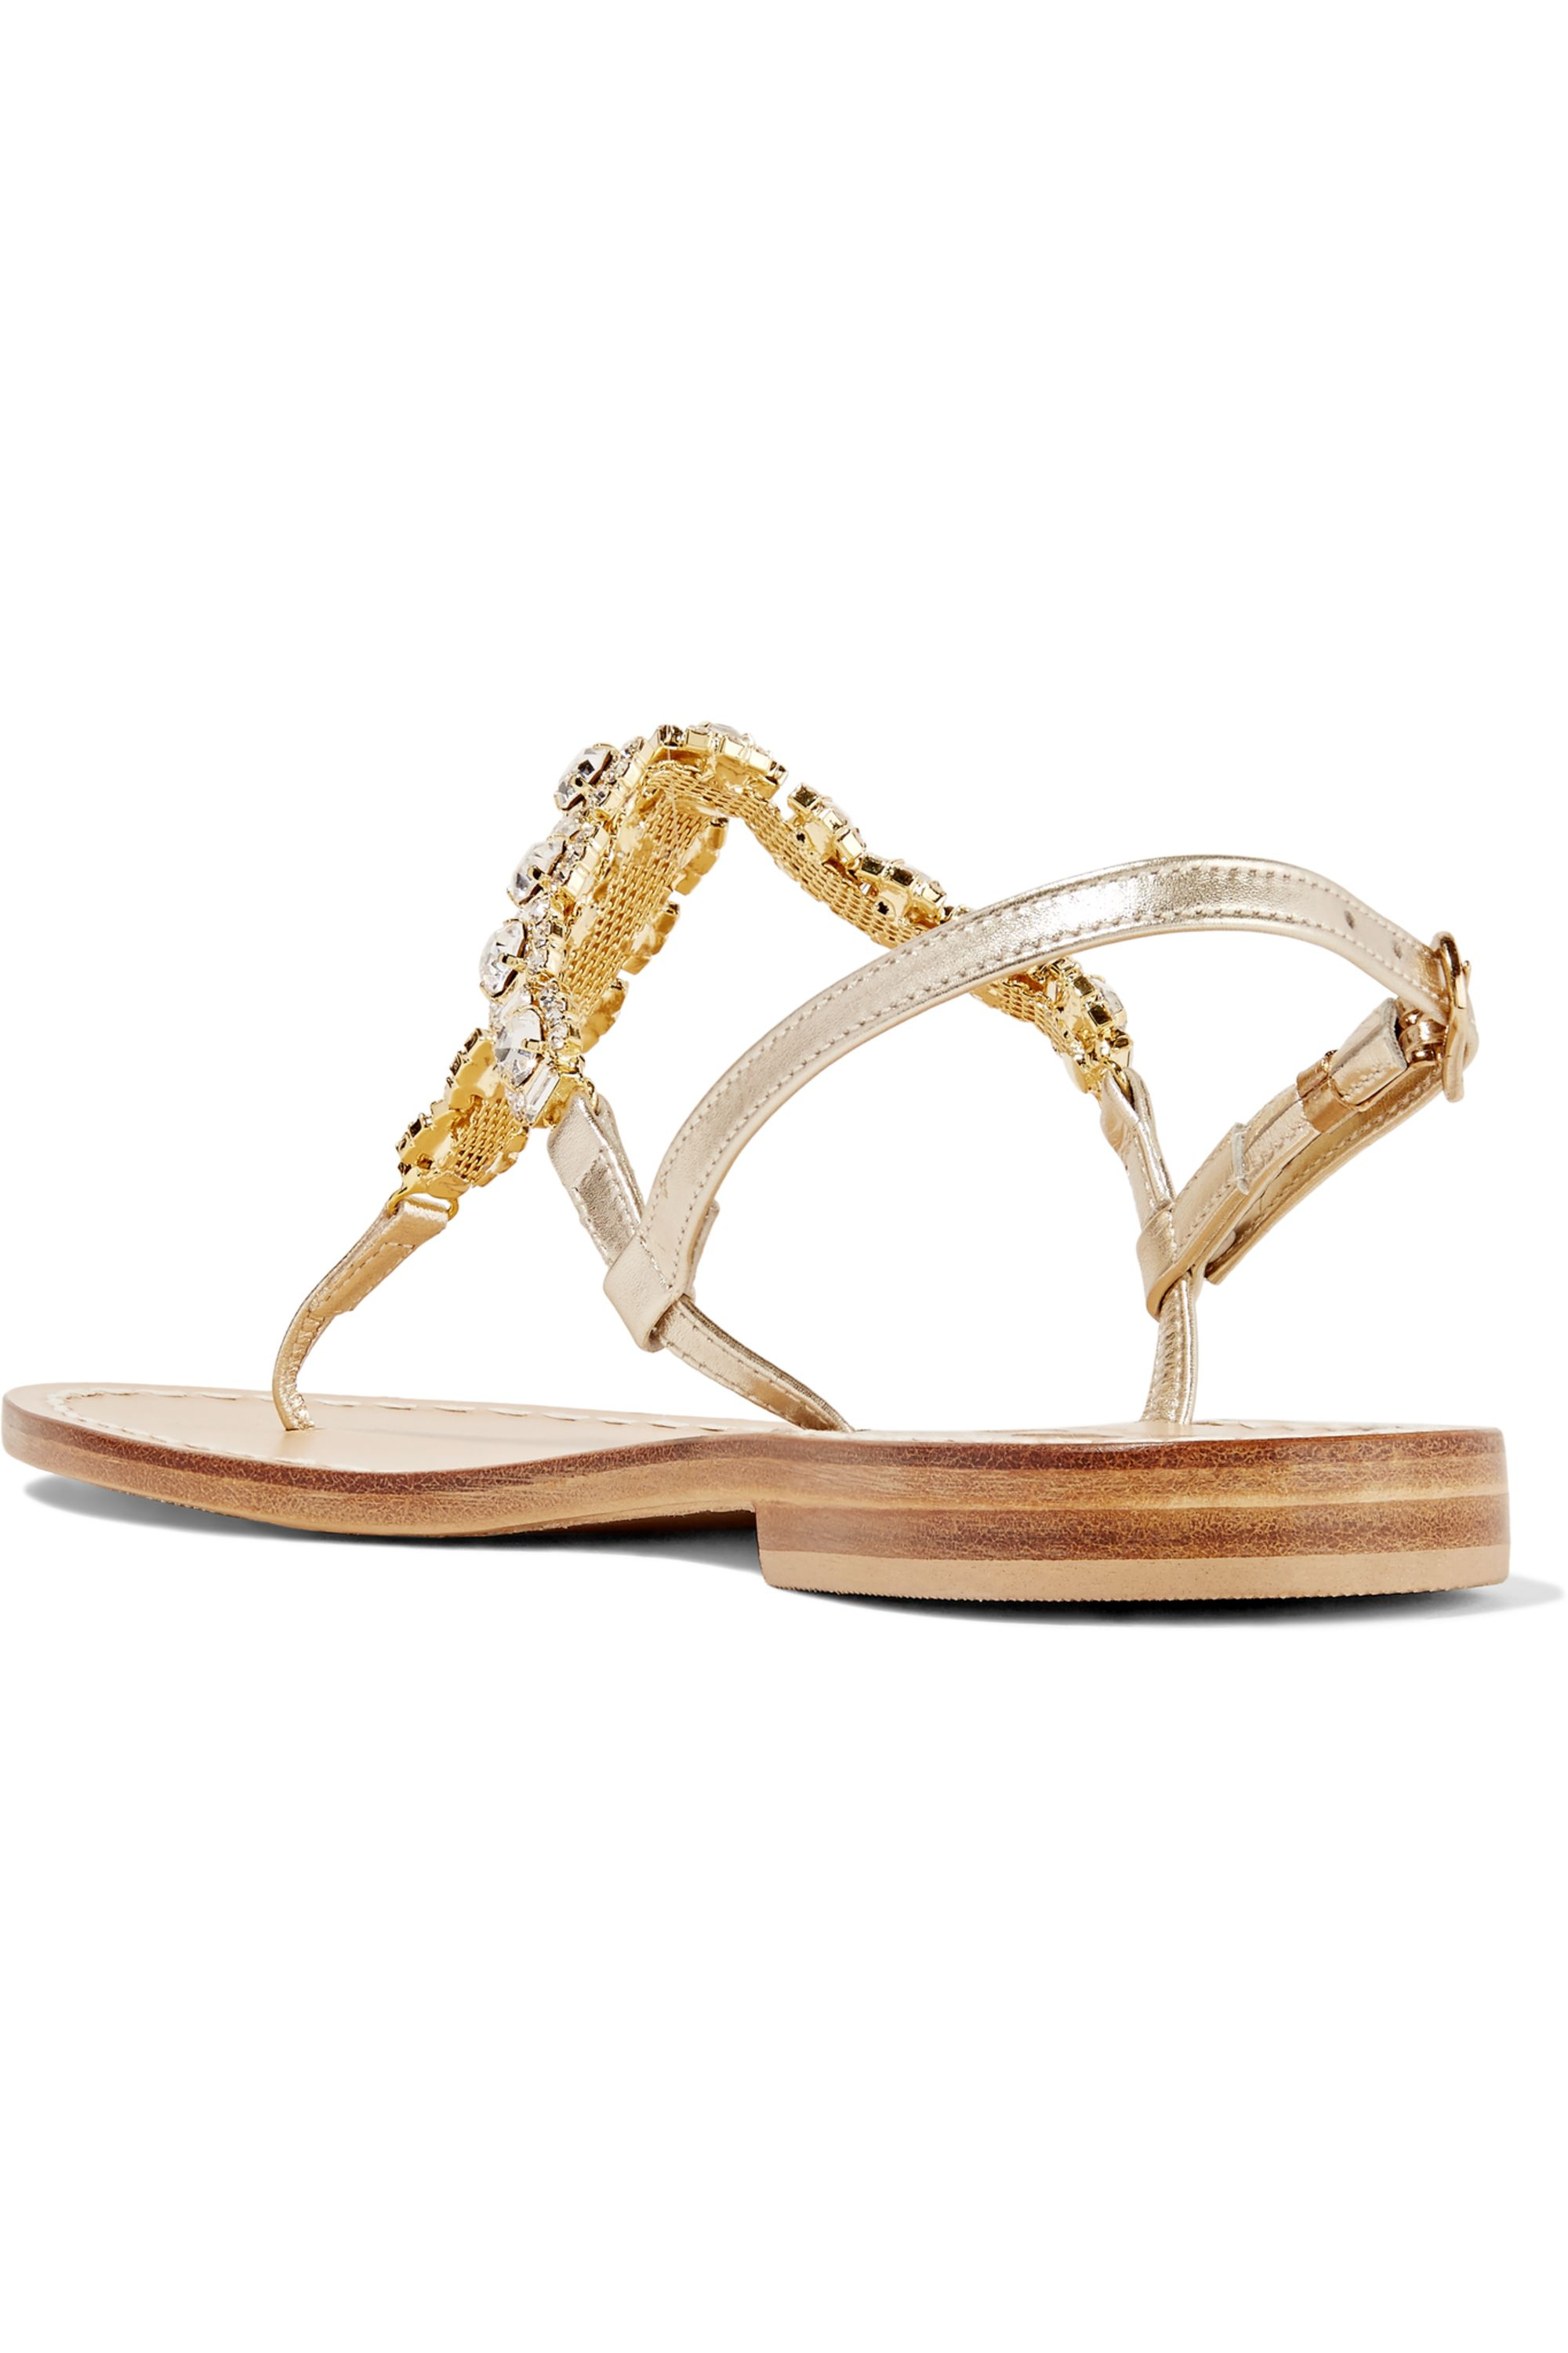 Musa Crystal-embellished metallic leather sandals